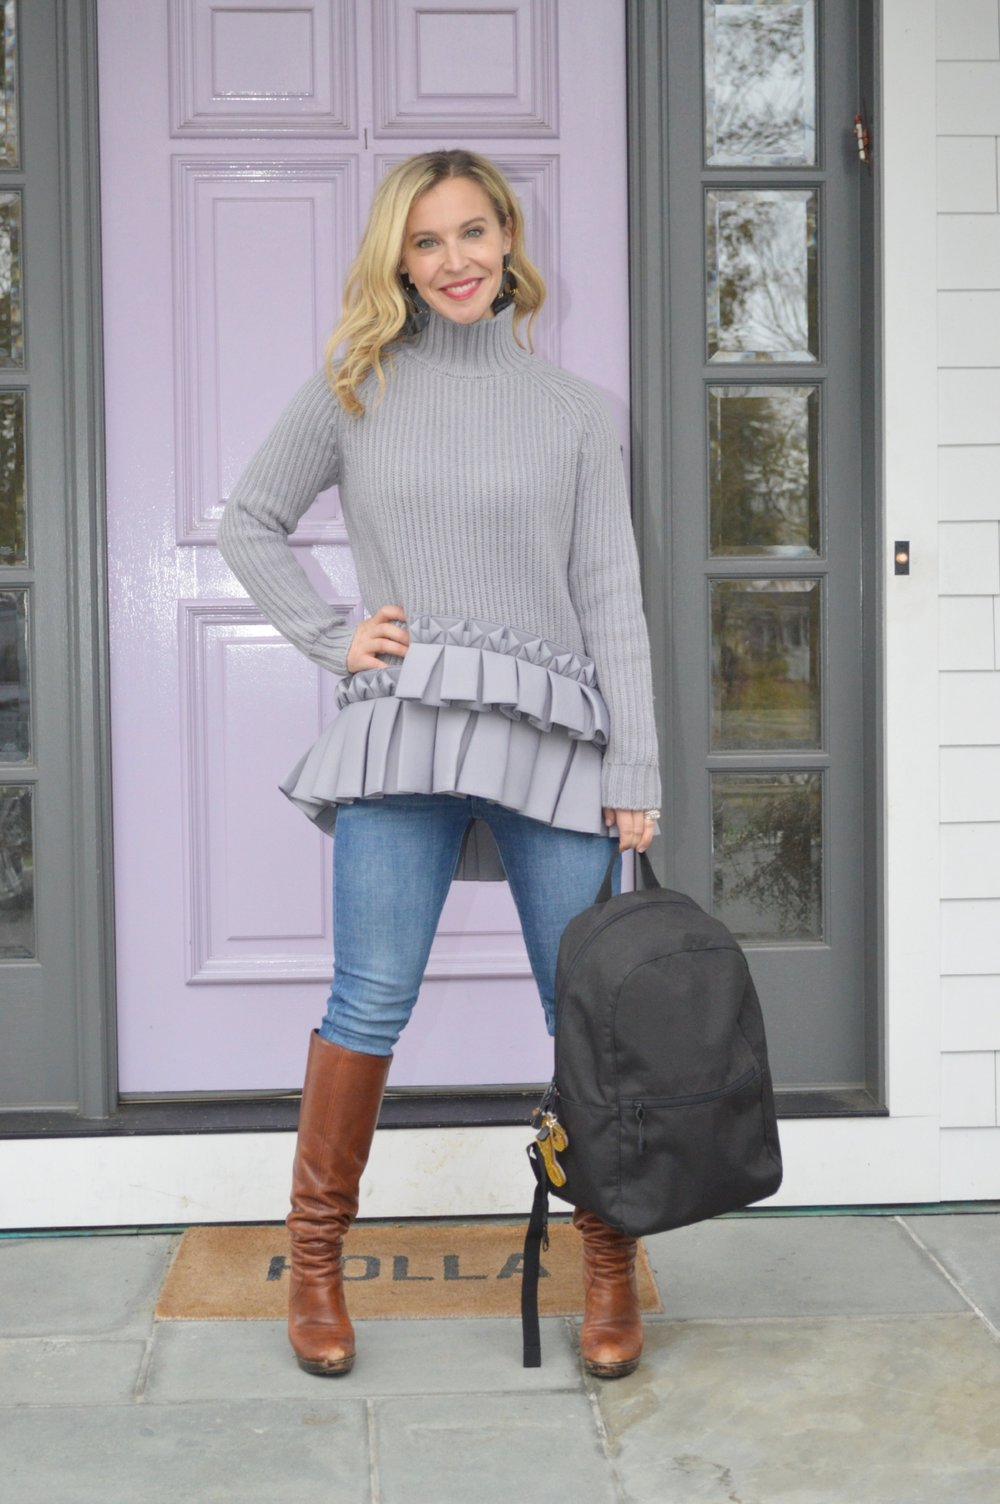 SHOP THE LOOK:  Sweater  /  High Rise Skinny Jeans  /  Boots  (similar to pictured) /  Backpack